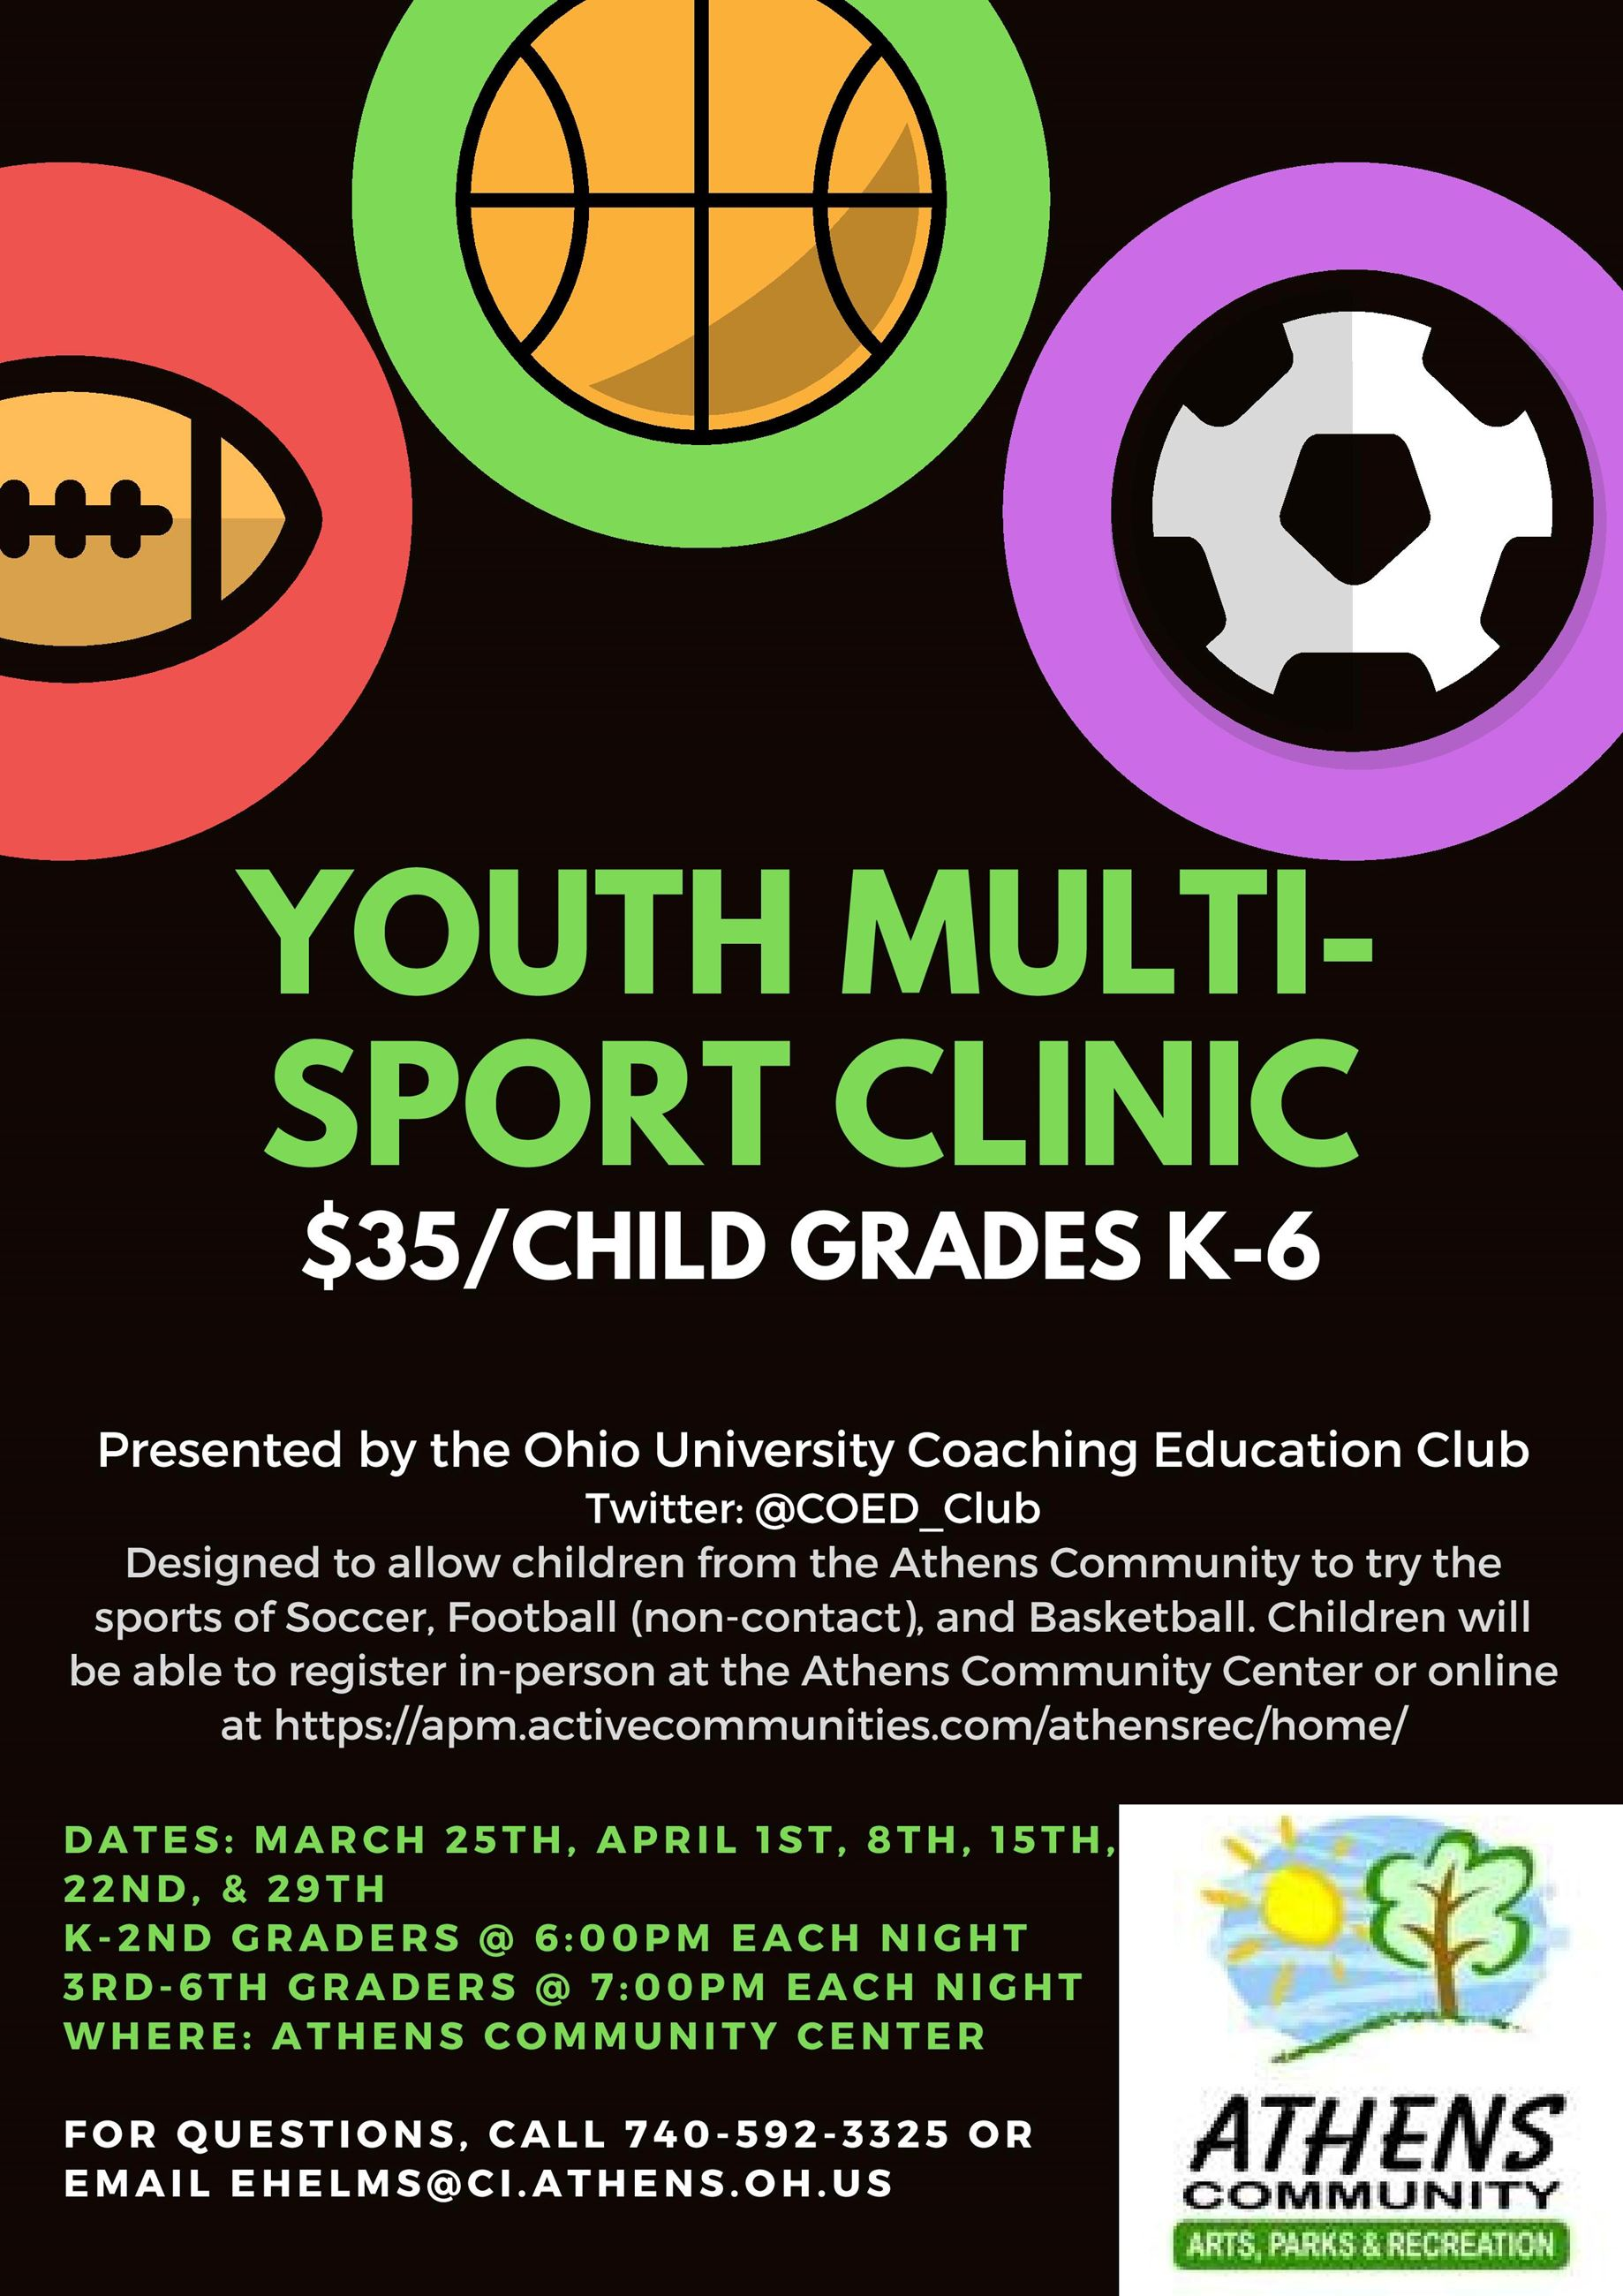 OUCEC Spring 2020 Athens Community Center Youth Multi-Sport Clinic Flyer-page-001